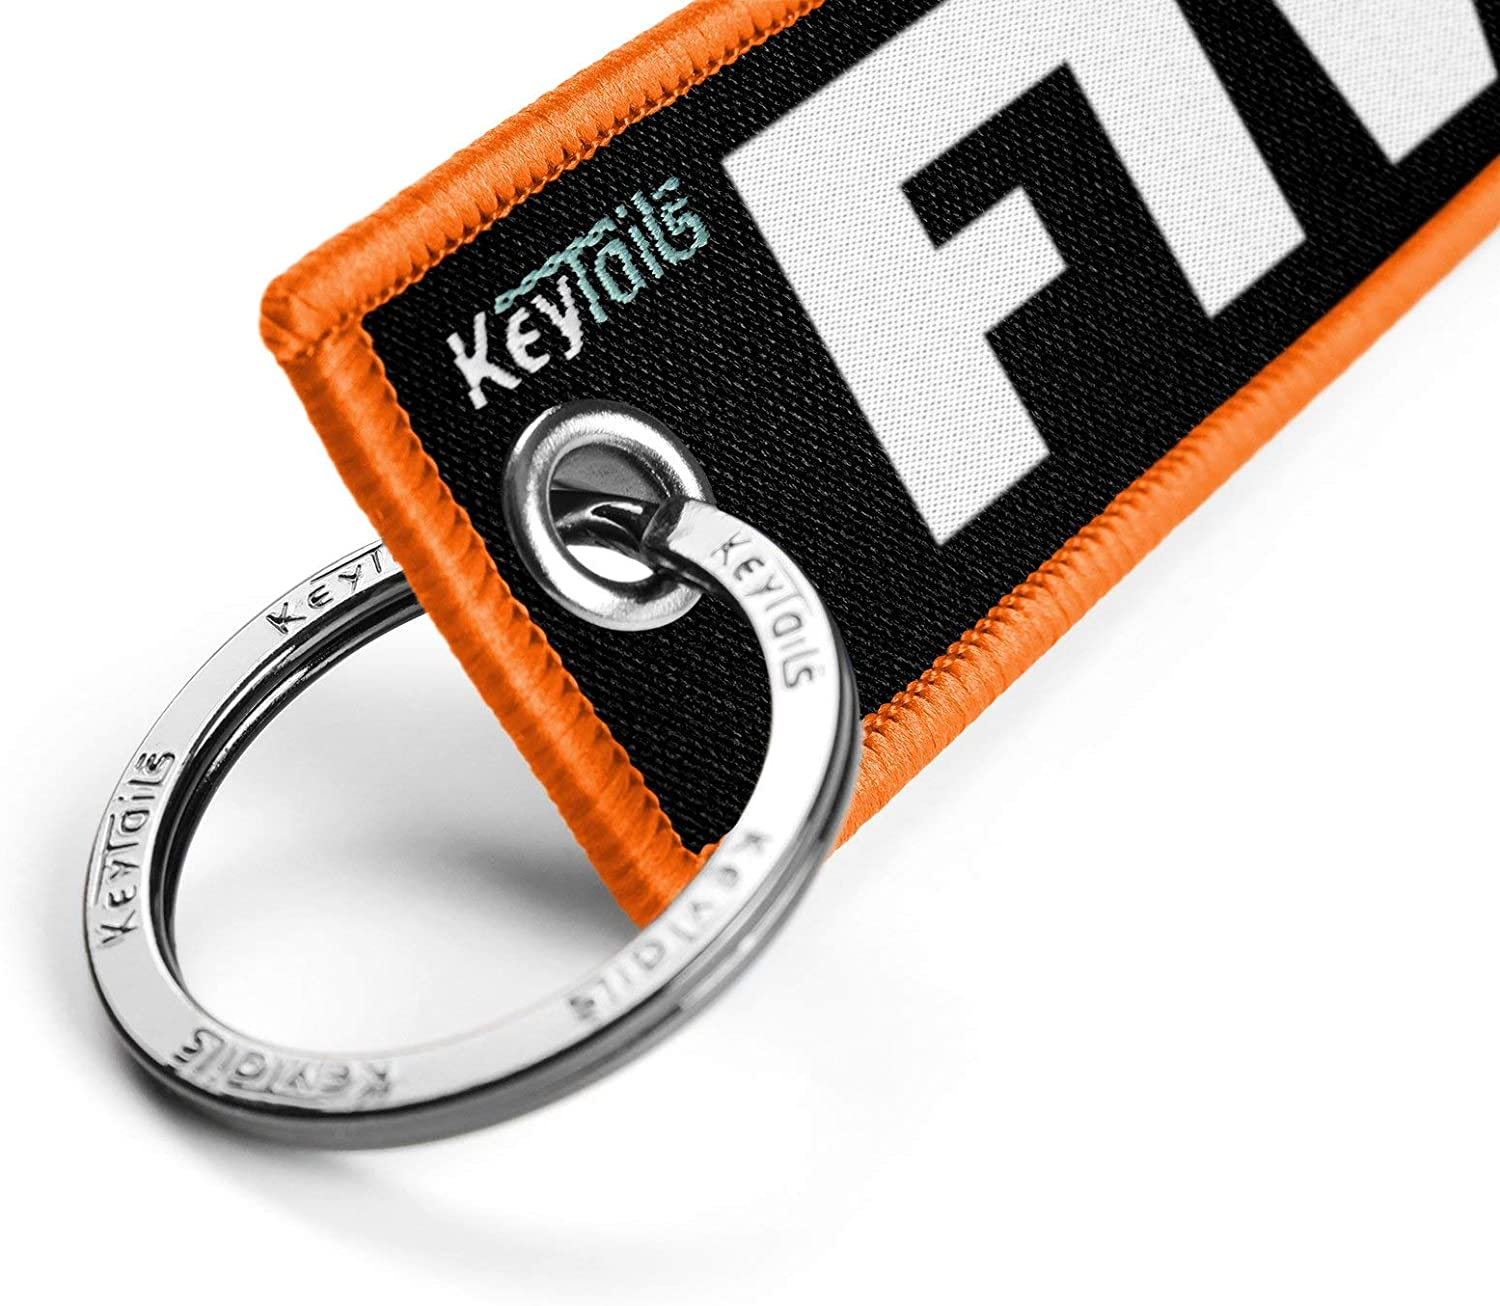 Scooter Premium Quality Key Tag for Motorcycle KEYTAILS Keychains Car FTW - For The Win, Forever Two Wheels ATV UTV